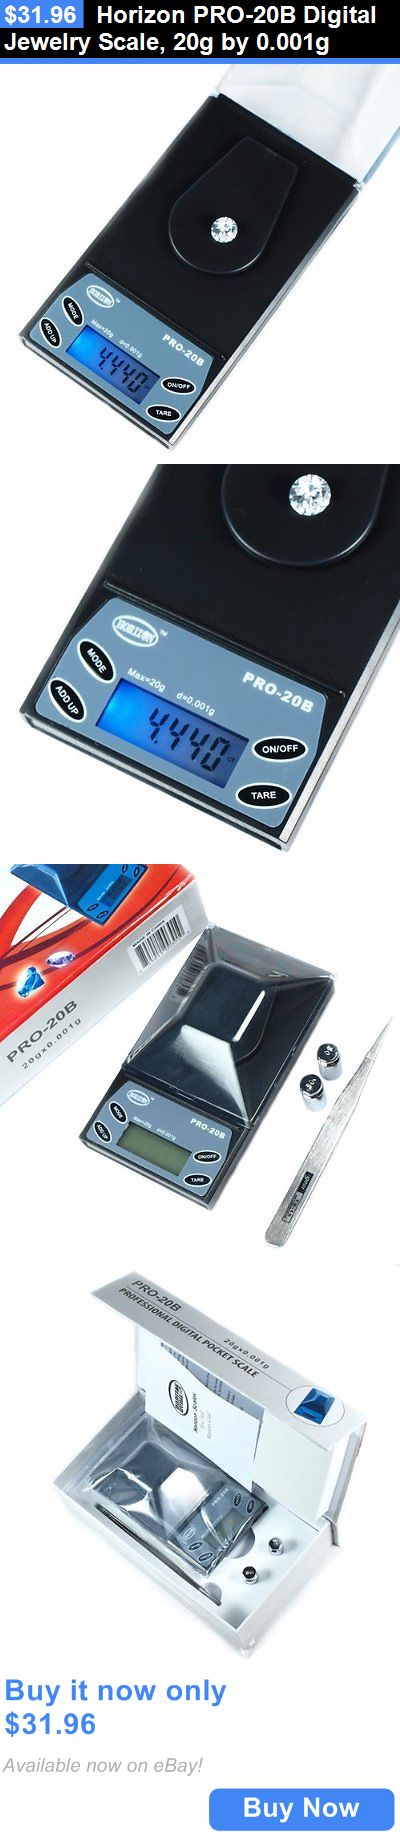 Pocket Digital Scales: Horizon Pro-20B Digital Jewelry Scale, 20G By 0.001G BUY IT NOW ONLY: $31.96